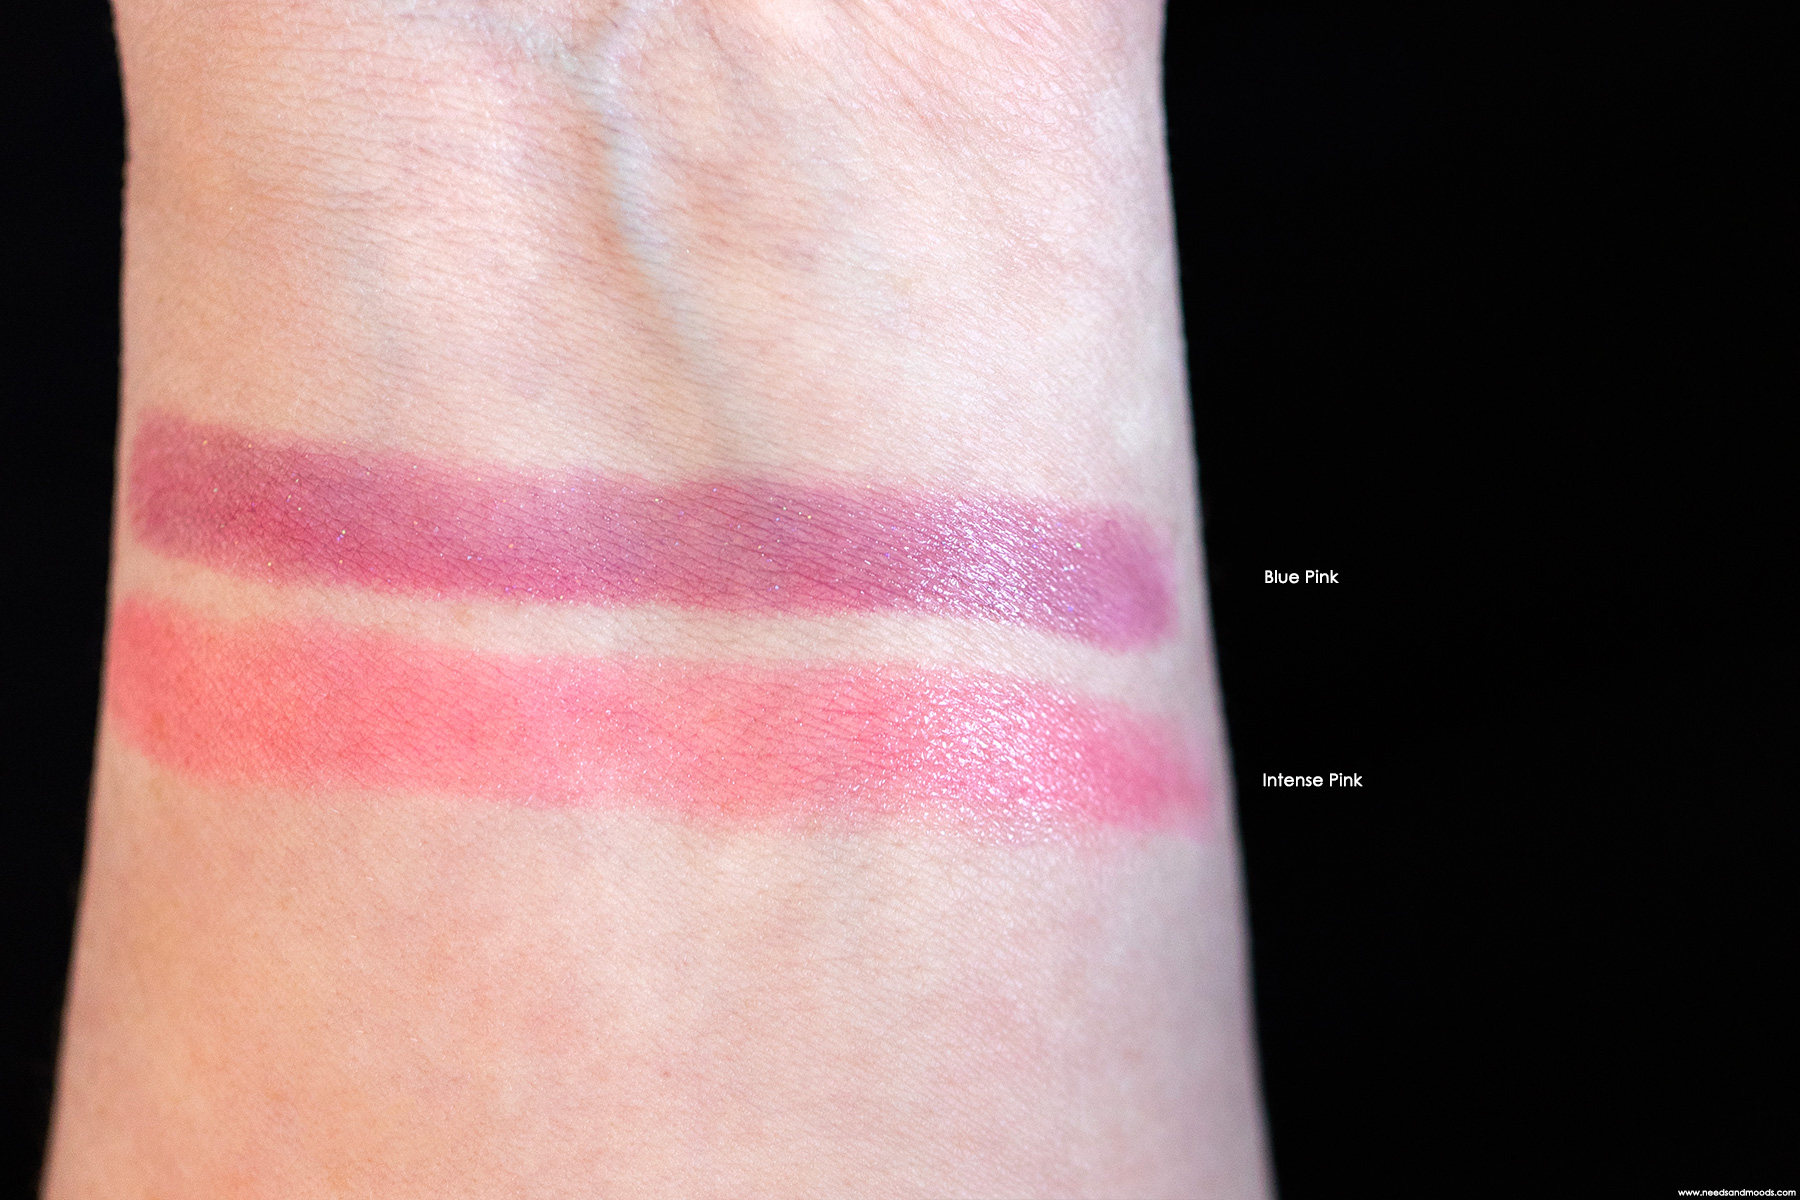 givenchy-rose-perfecto-swatch-perfect-pink-blue-pink